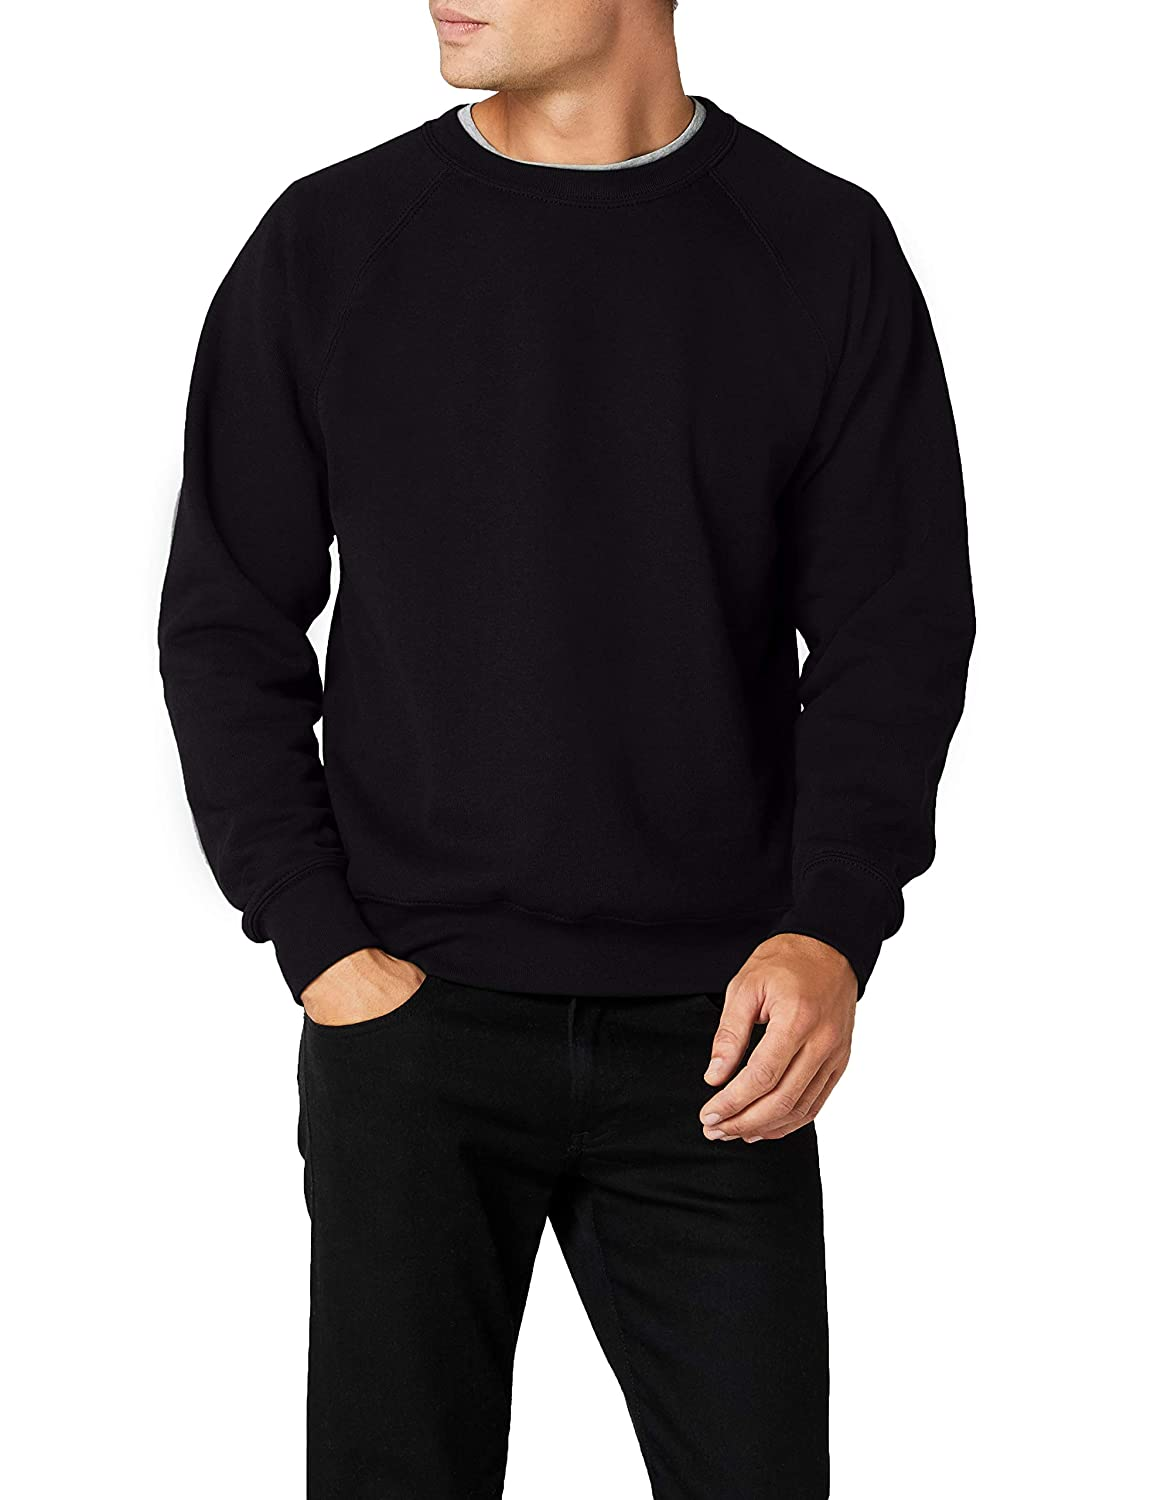 Fruit Of The Loom 62-216-0, Sudadera Para Hombre, Negro (Black), XX-Large